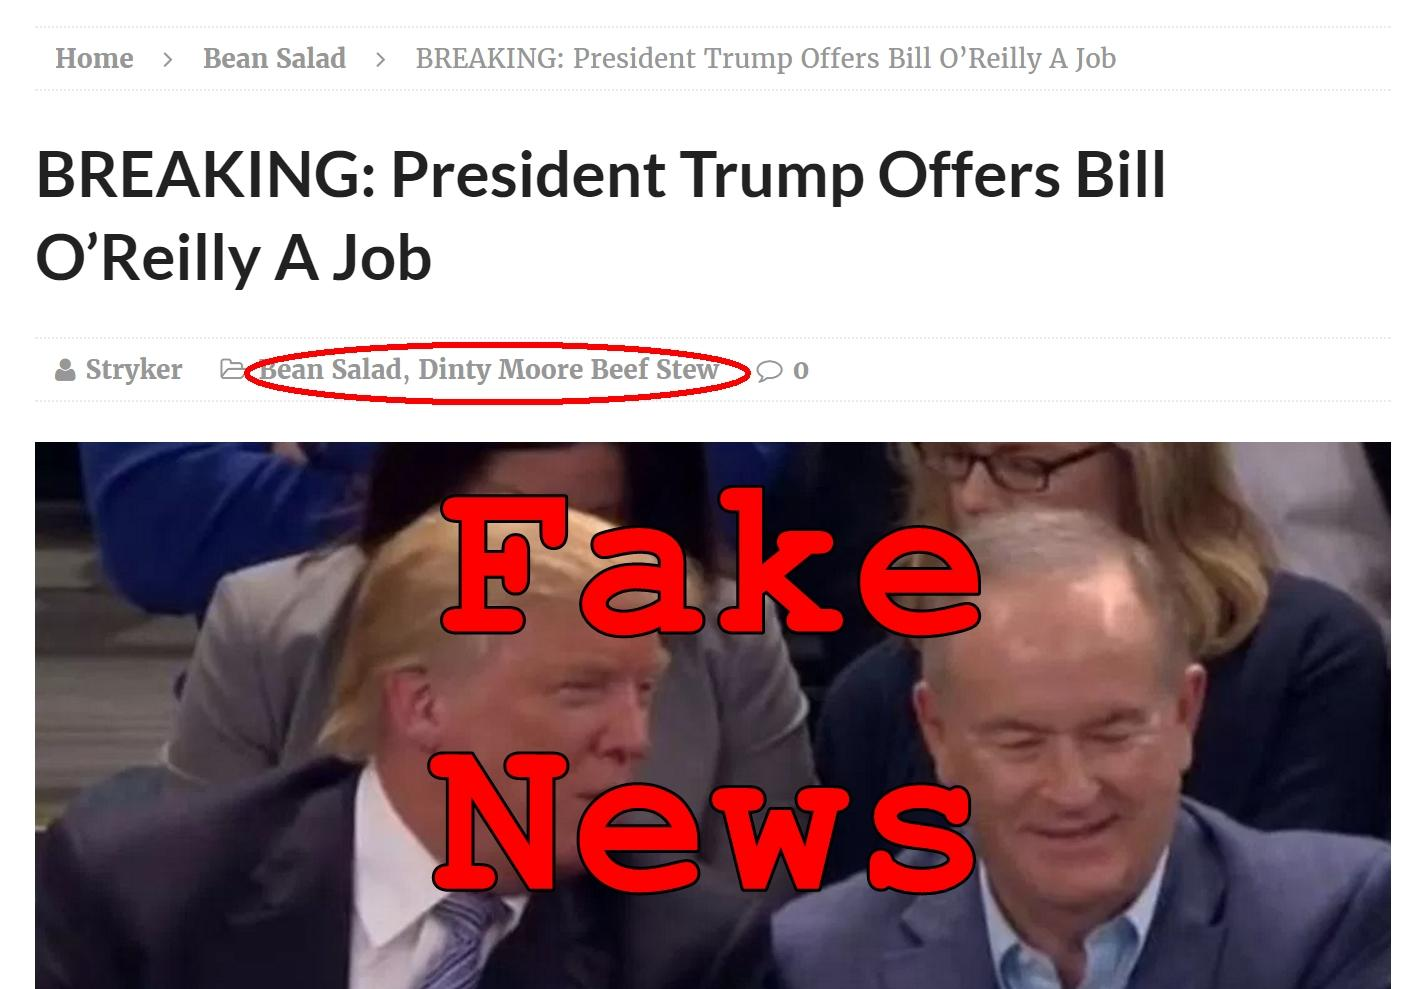 Fake News: President Trump Did NOT Offer Bill O'Reilly A Job